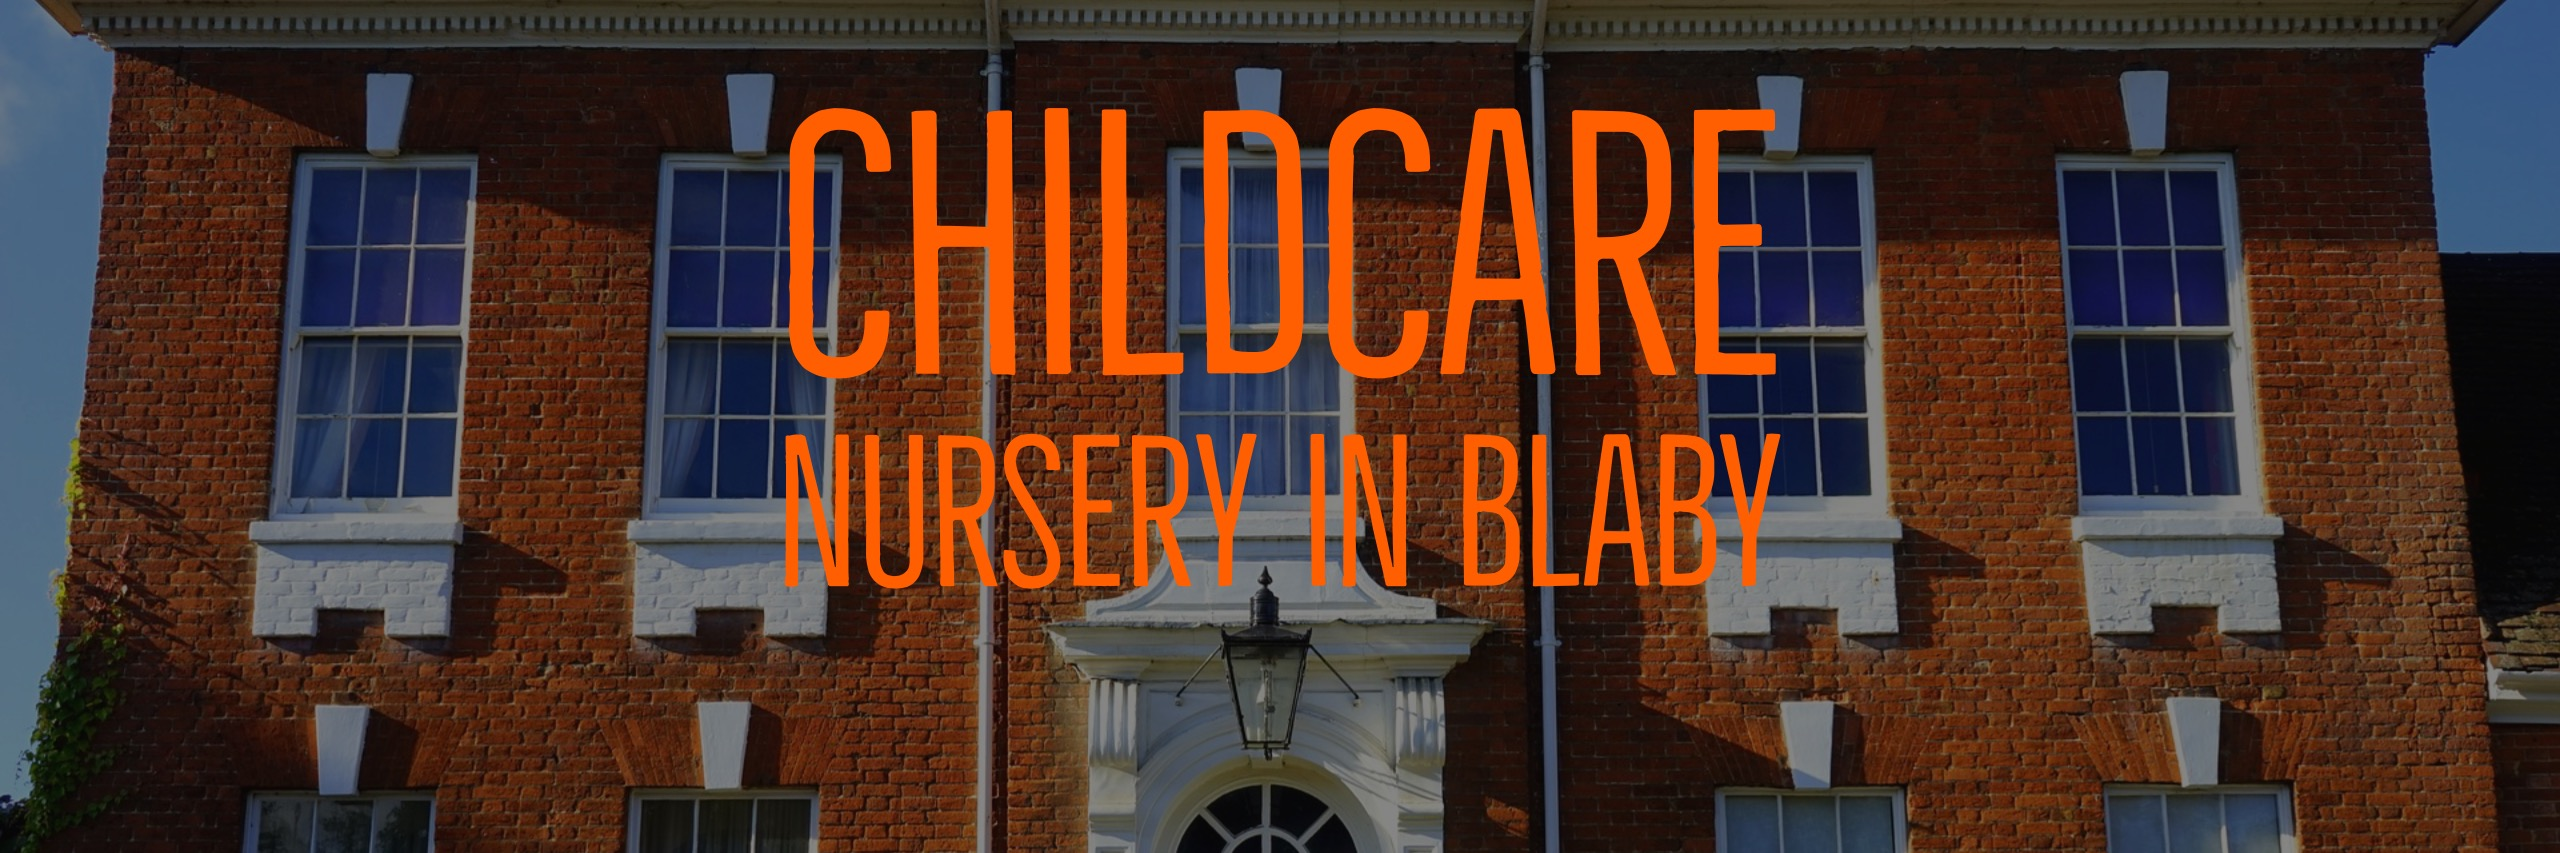 child care day nursery Blaby Leicester